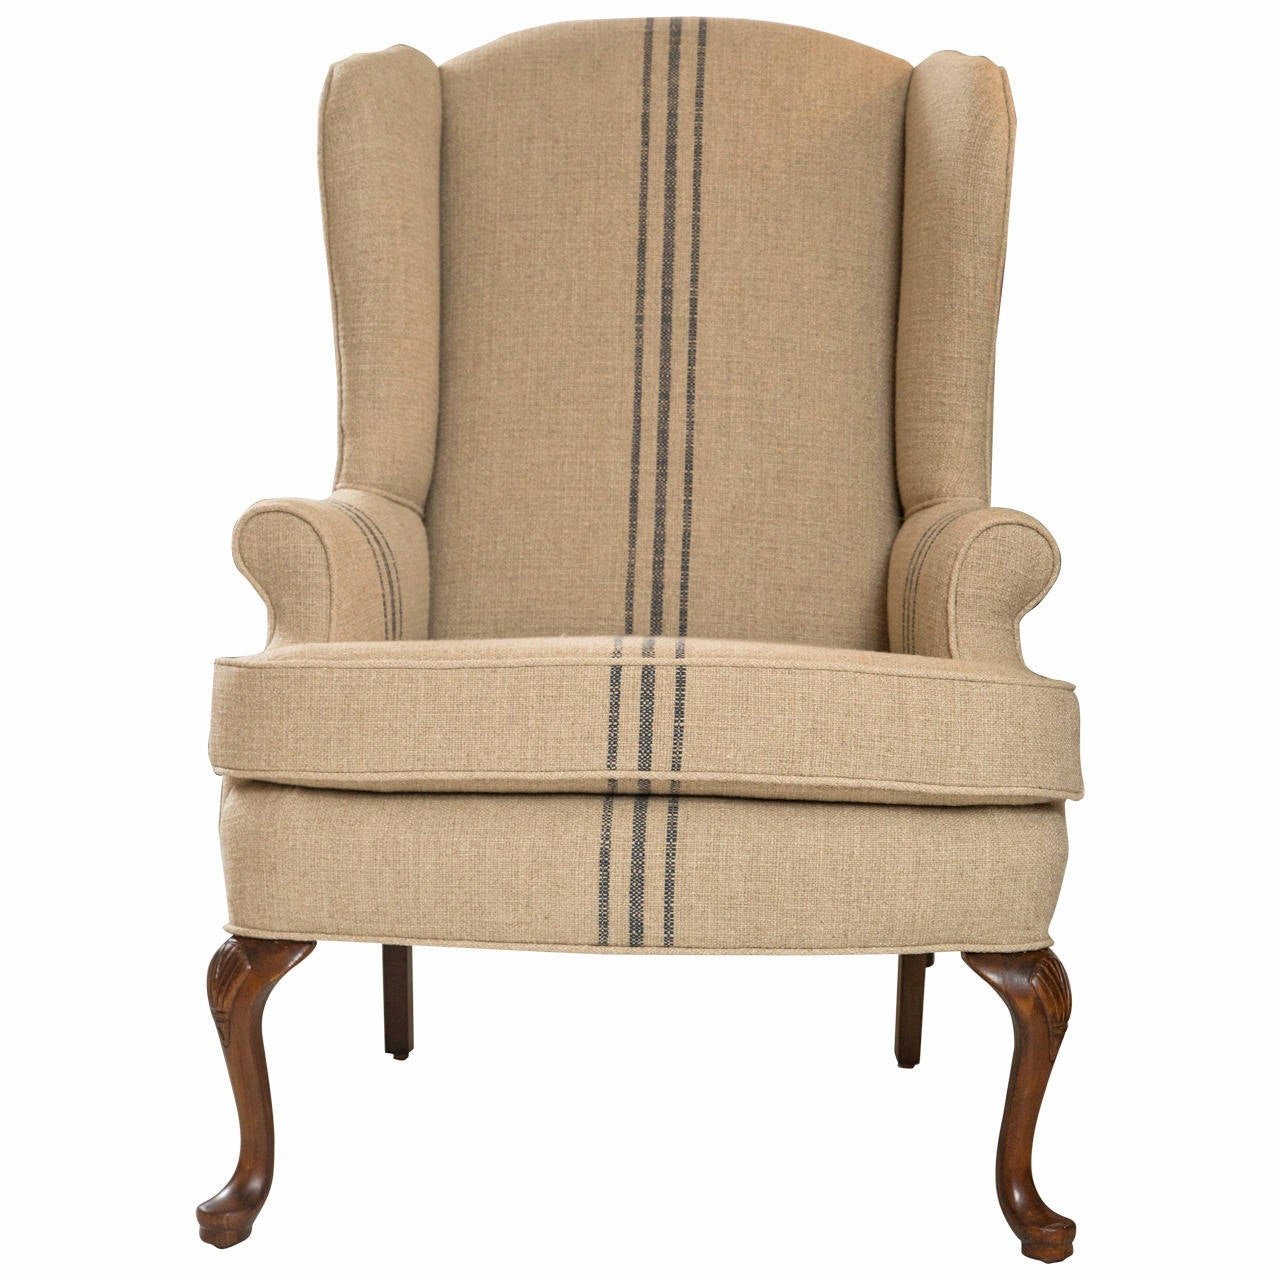 Classic mid century wing chair at 1stdibs for Classic mid century chairs